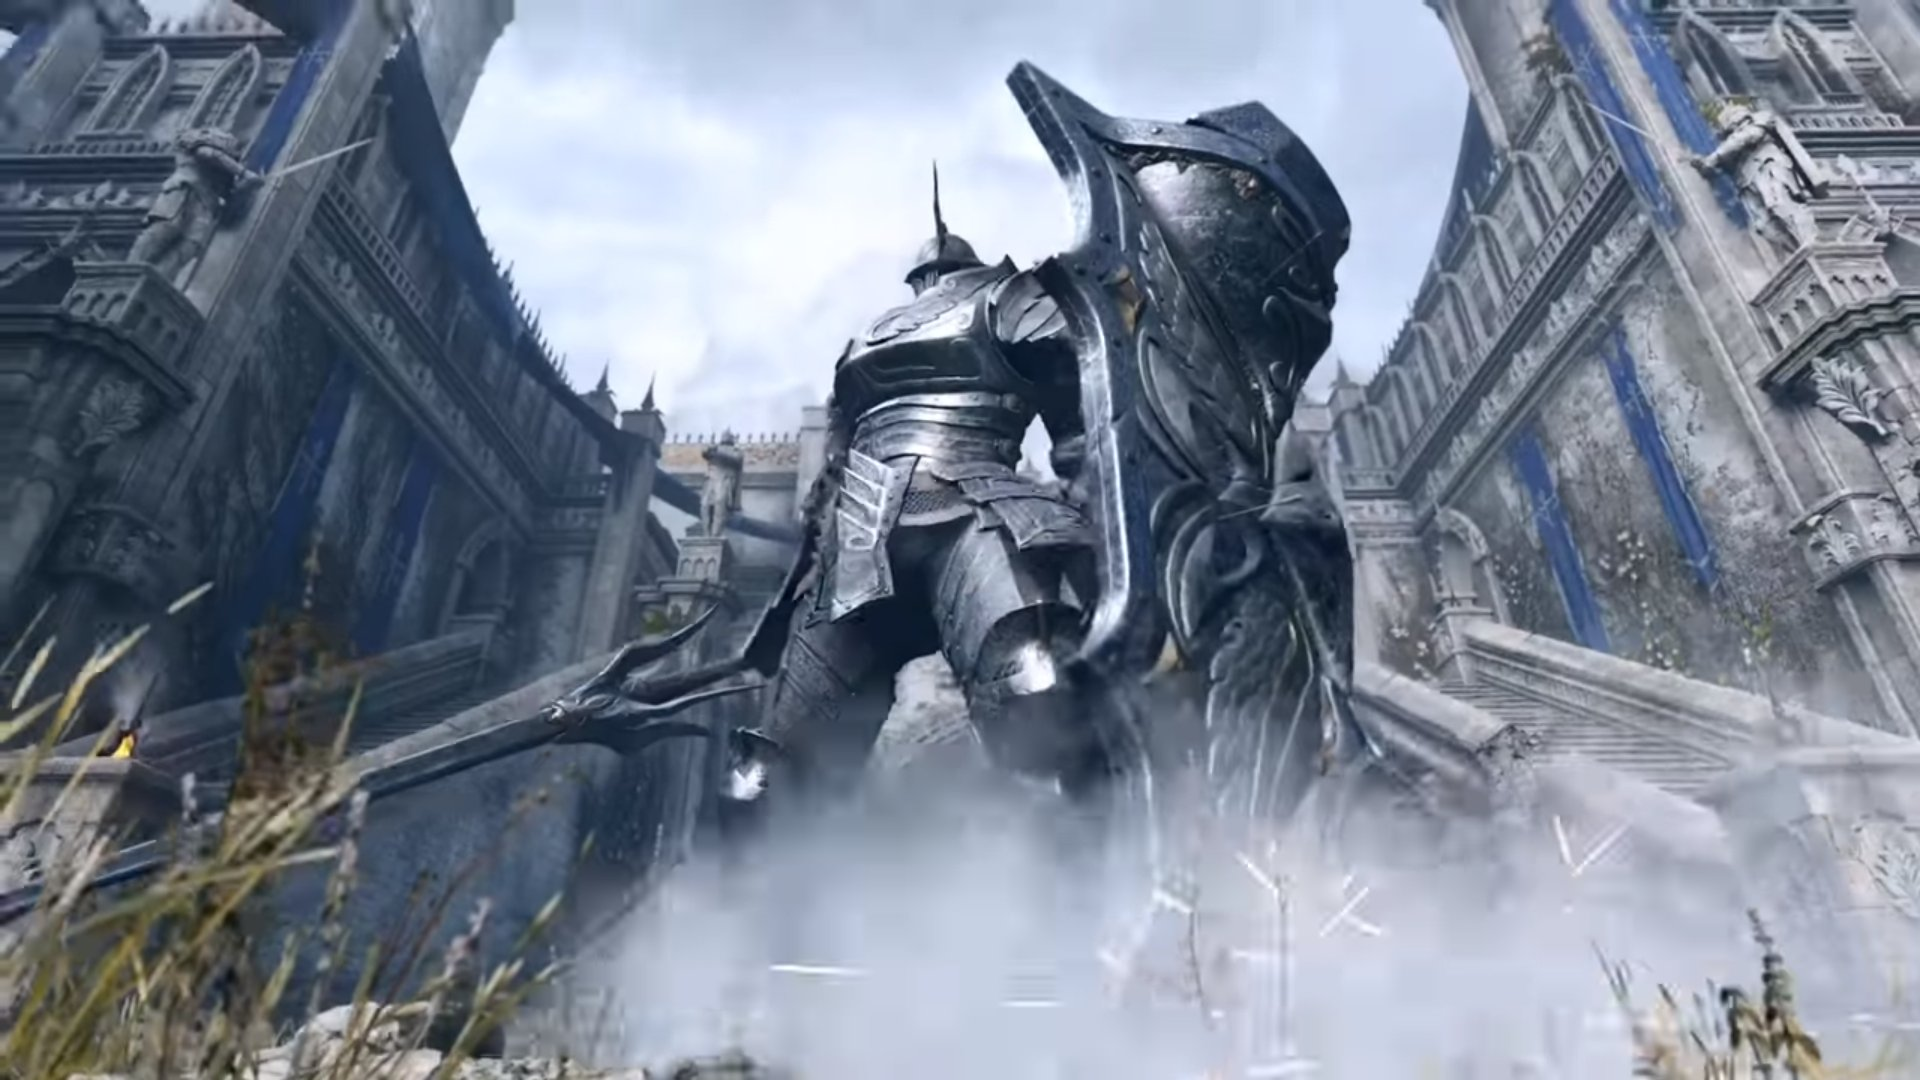 Young Kemosobe On Twitter Demon S Souls Remake Comparison Tower Knight Yes I Am Hyped